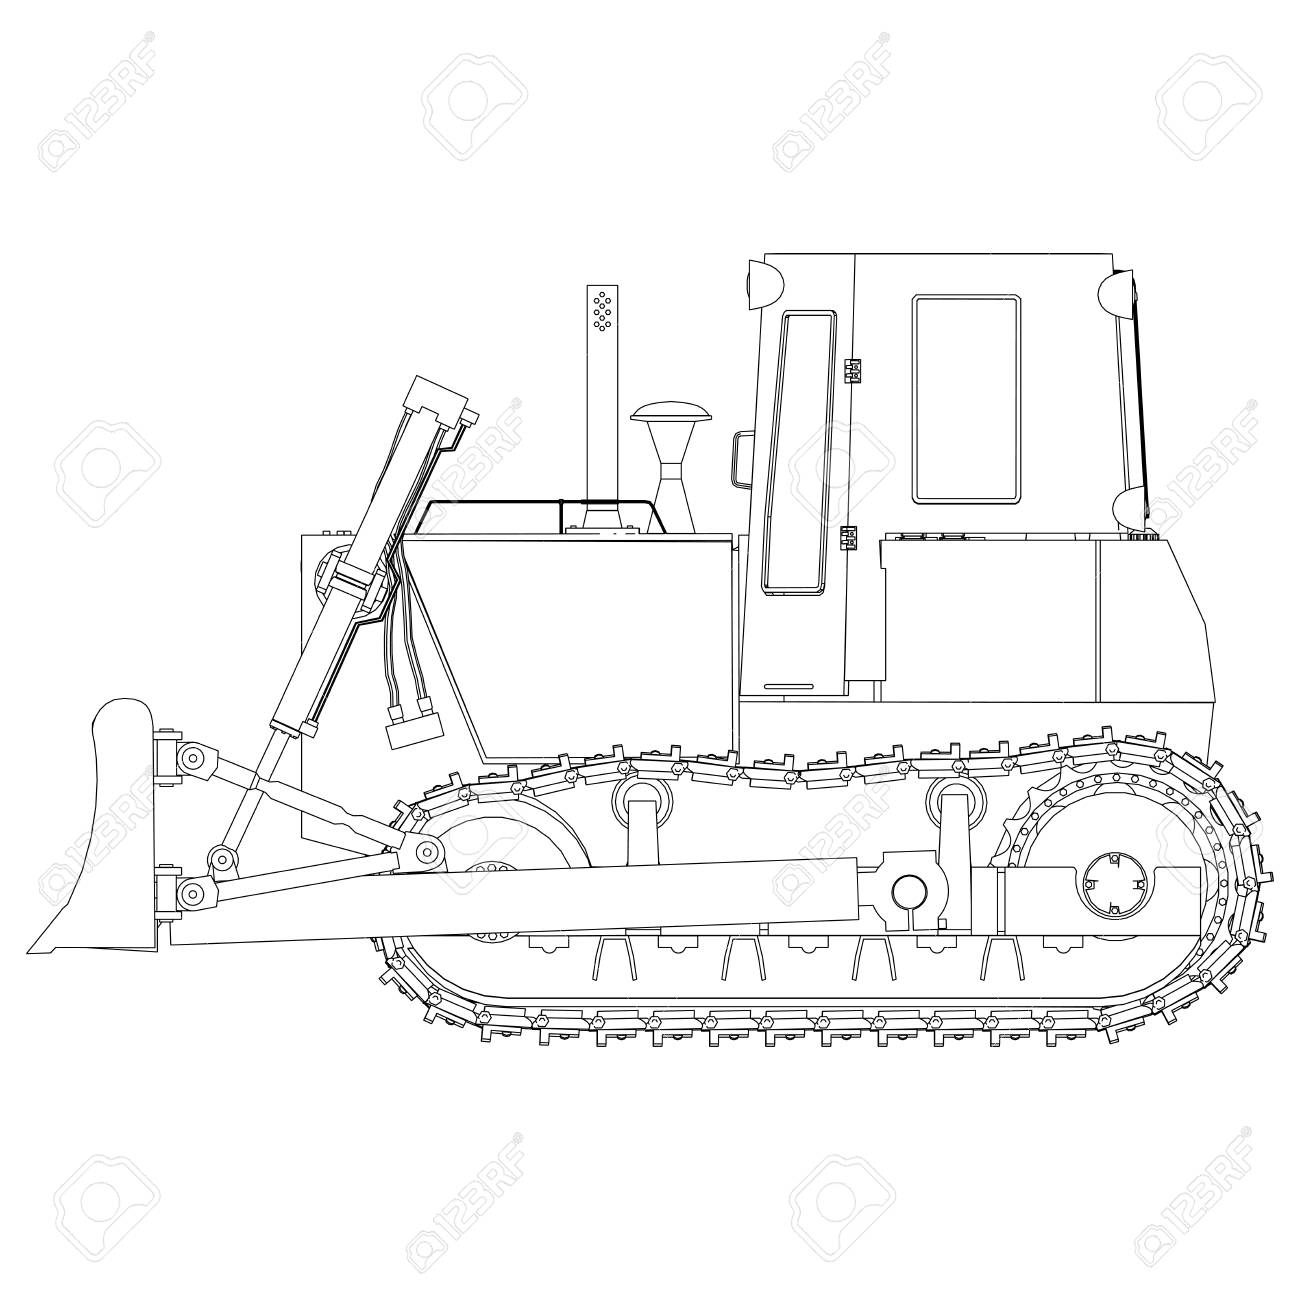 hight resolution of outline bulldozer construction icon vector excavator tractor equipment road illustration shovel stock vector 85494760